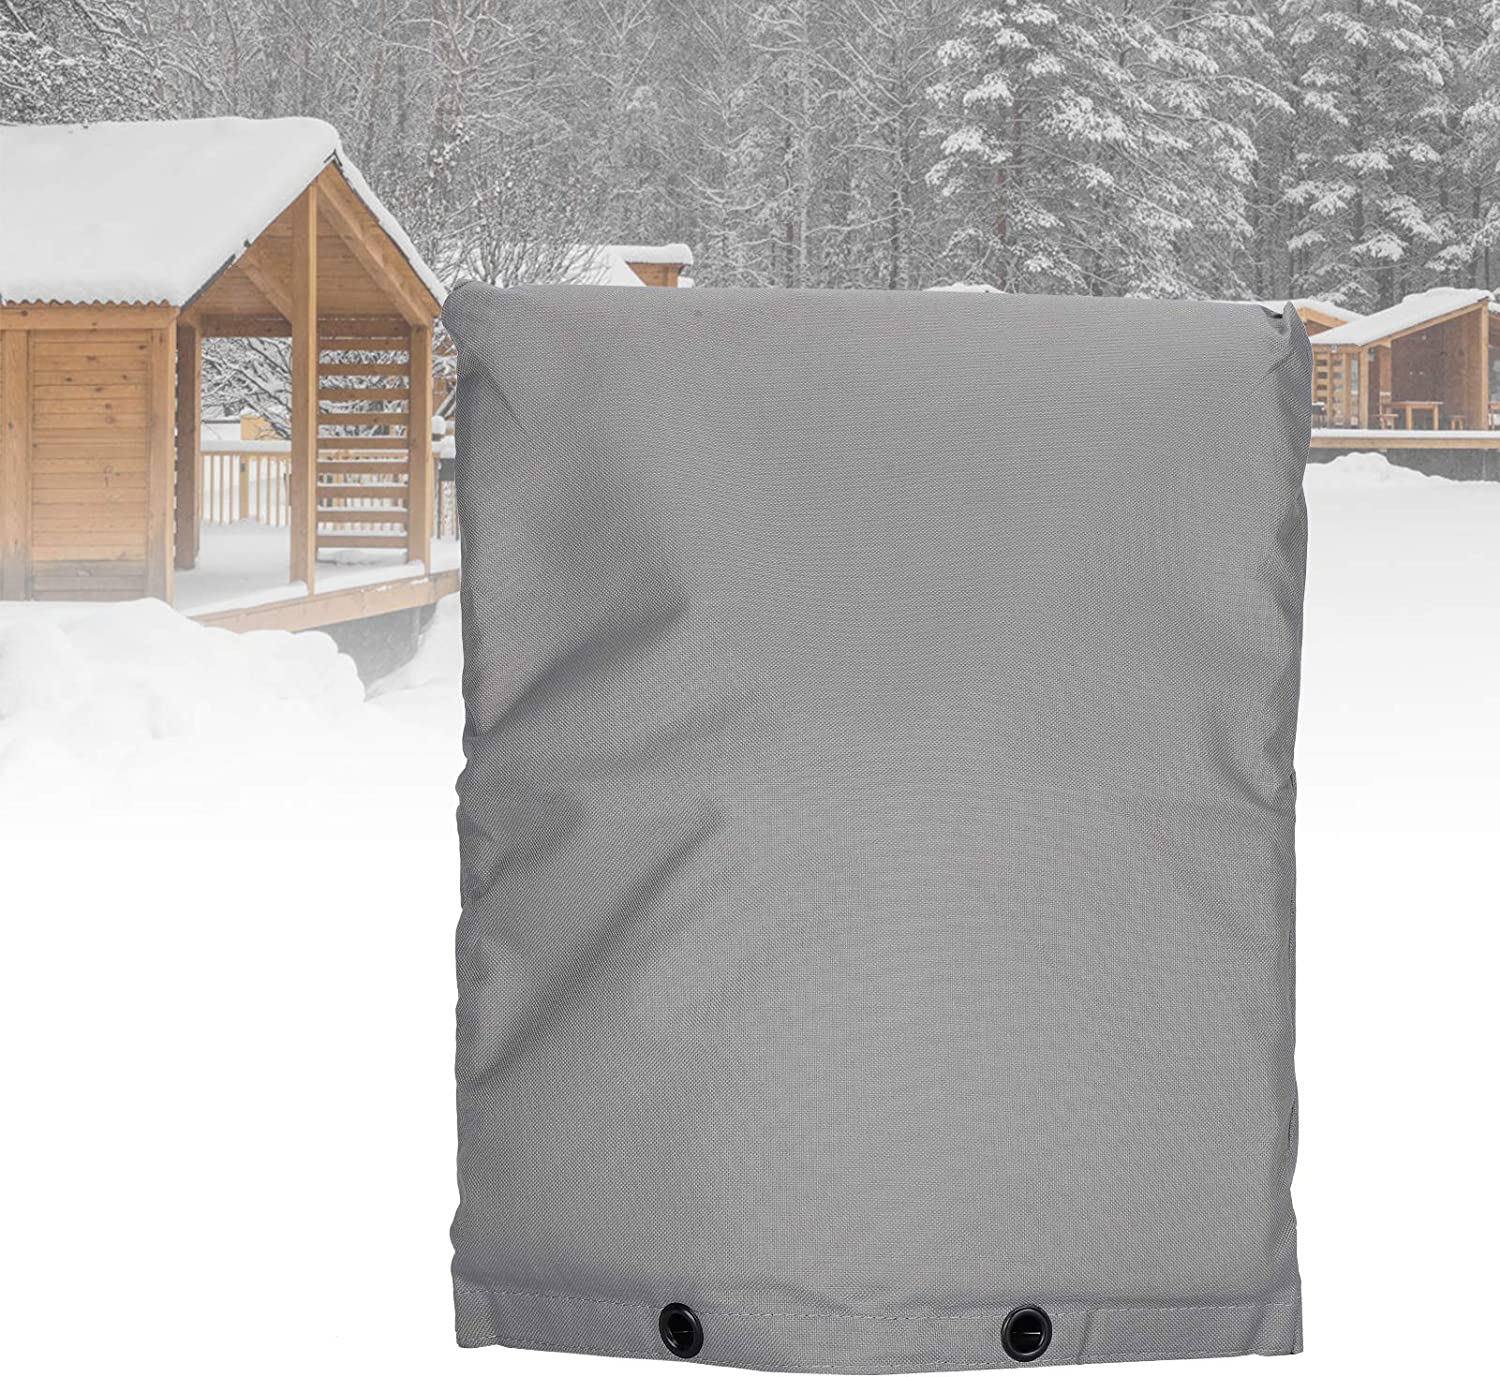 Jacksing Built‑in Insulation Max 66% OFF Cotton Protection Freeze Ranking TOP7 Pipe